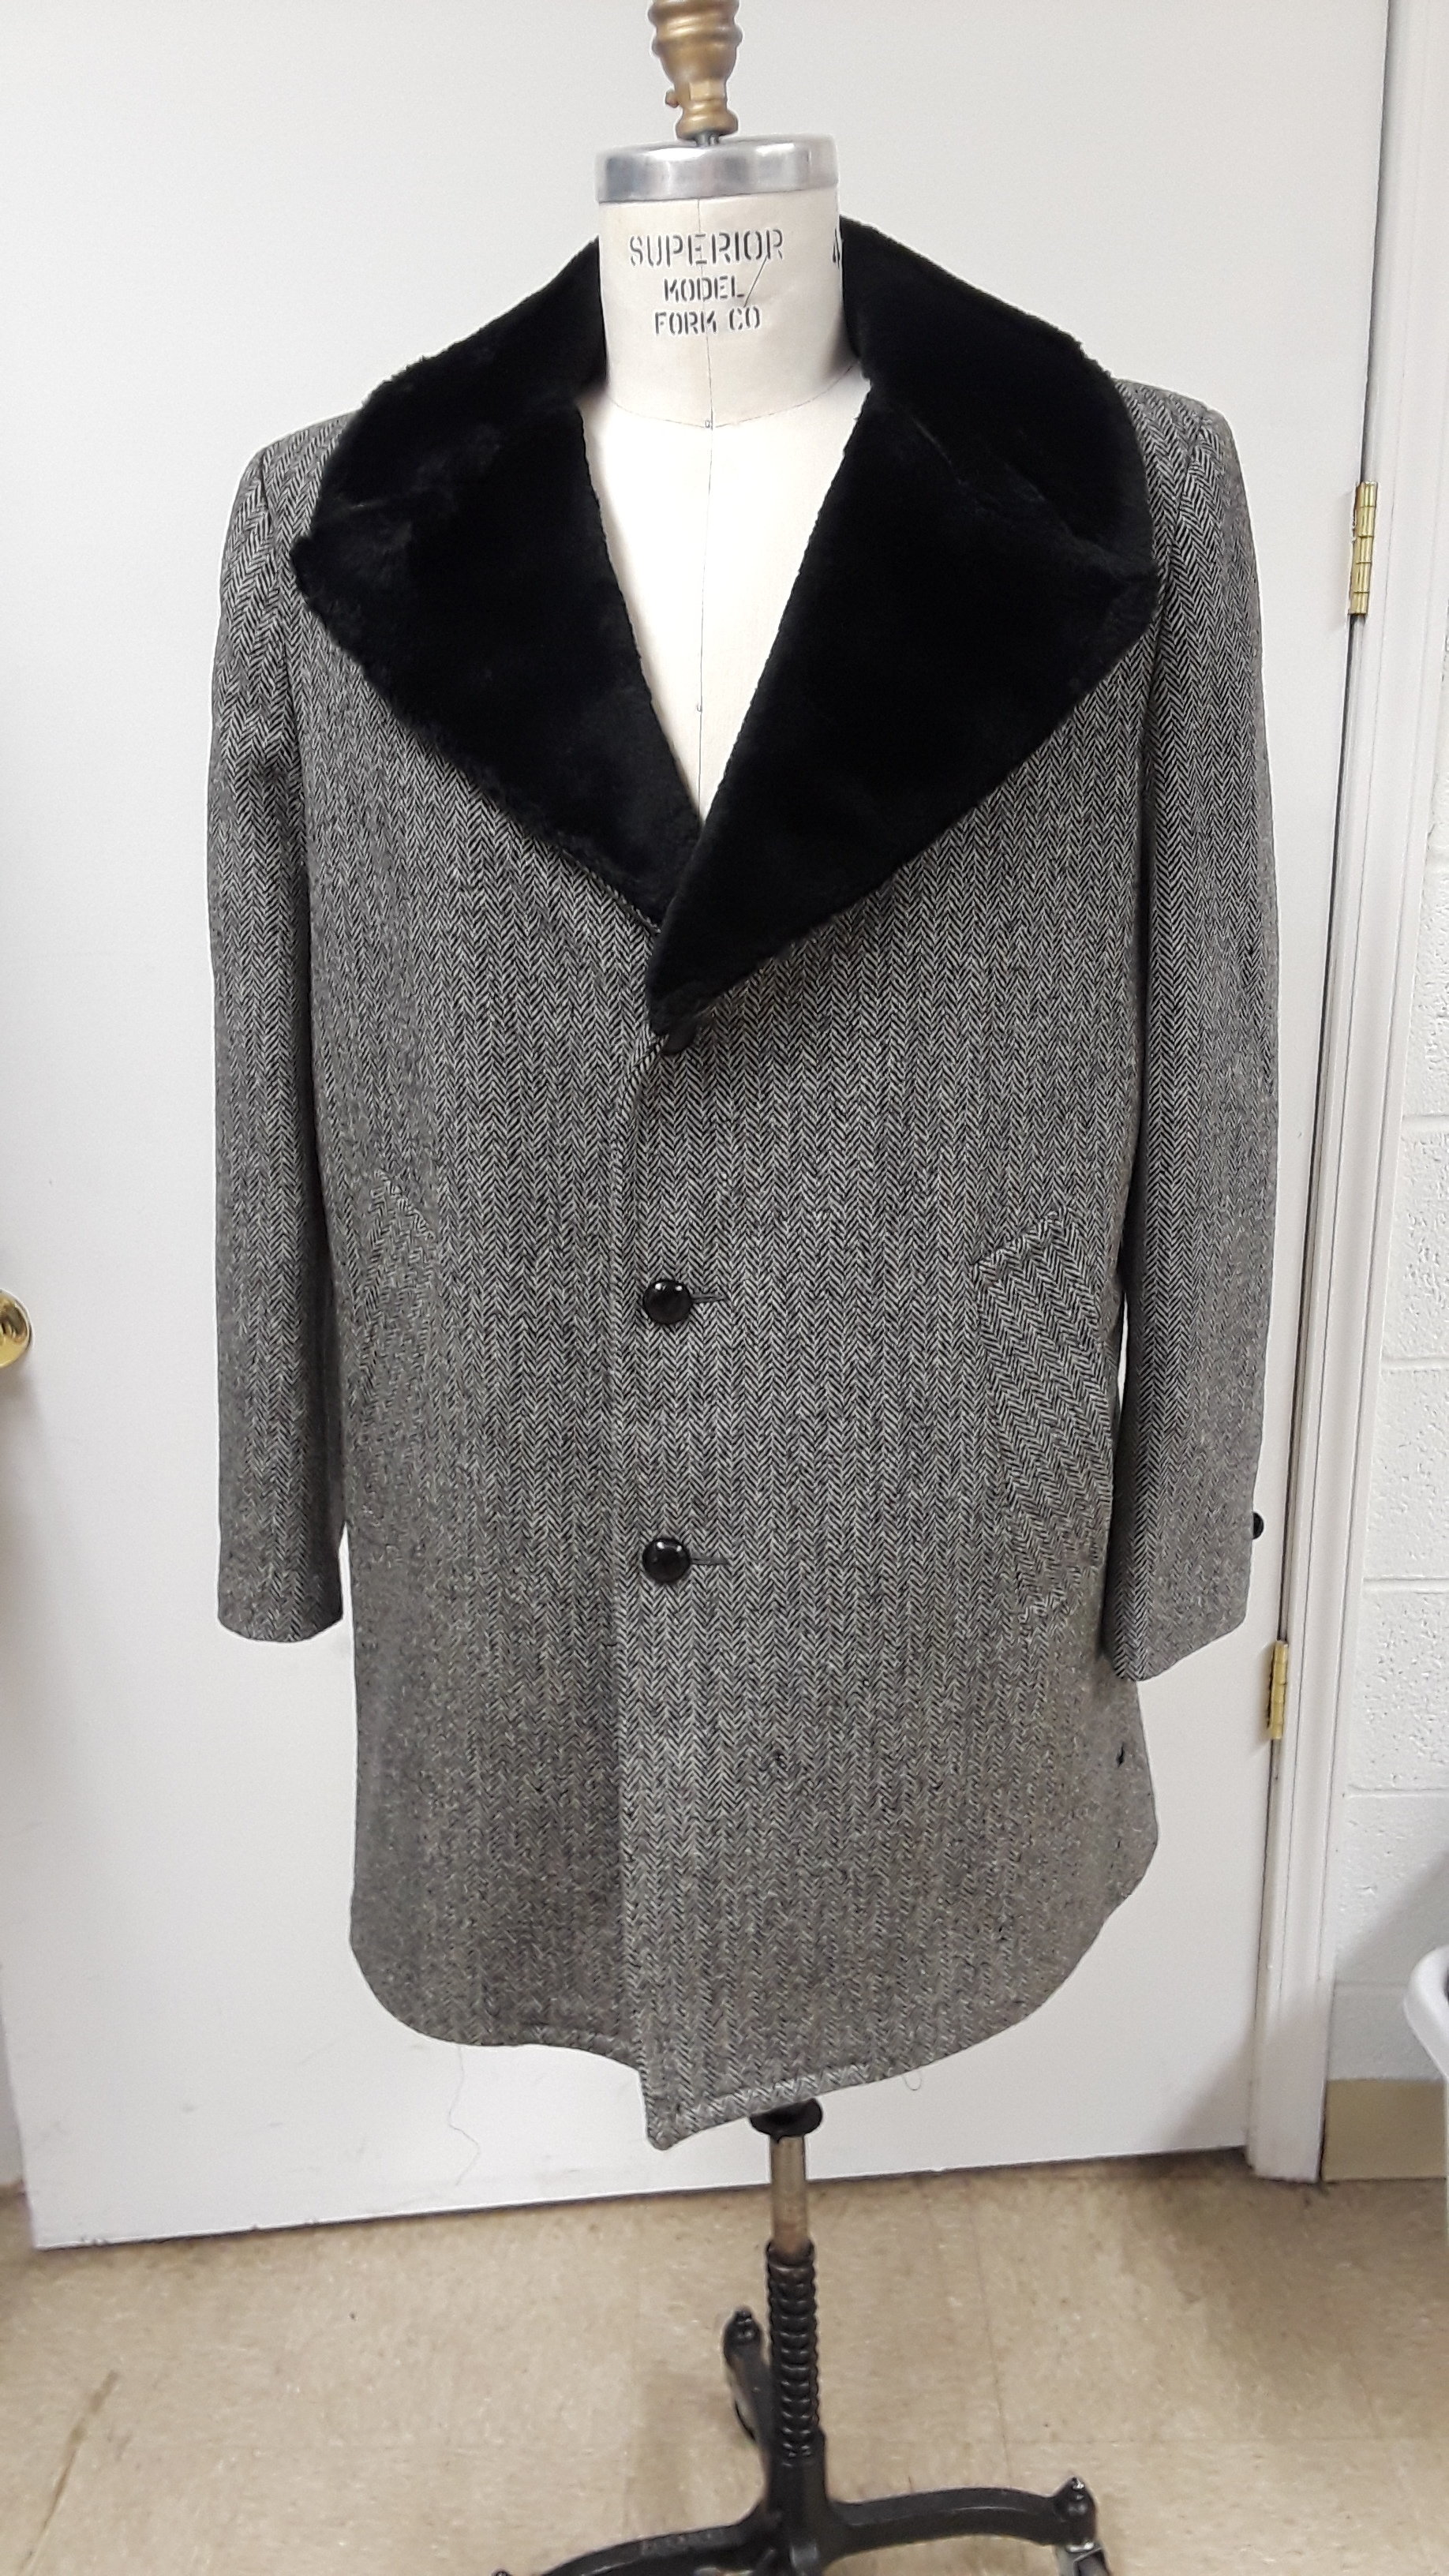 Thrift Store Alteration - Seal lined 1960s Men's Top coat in a large size converted to an early 19th Century Incroyable coat. Deconstruction, draping, tailoring, re-lining and final reconstruction all performed by Katherine Davis.